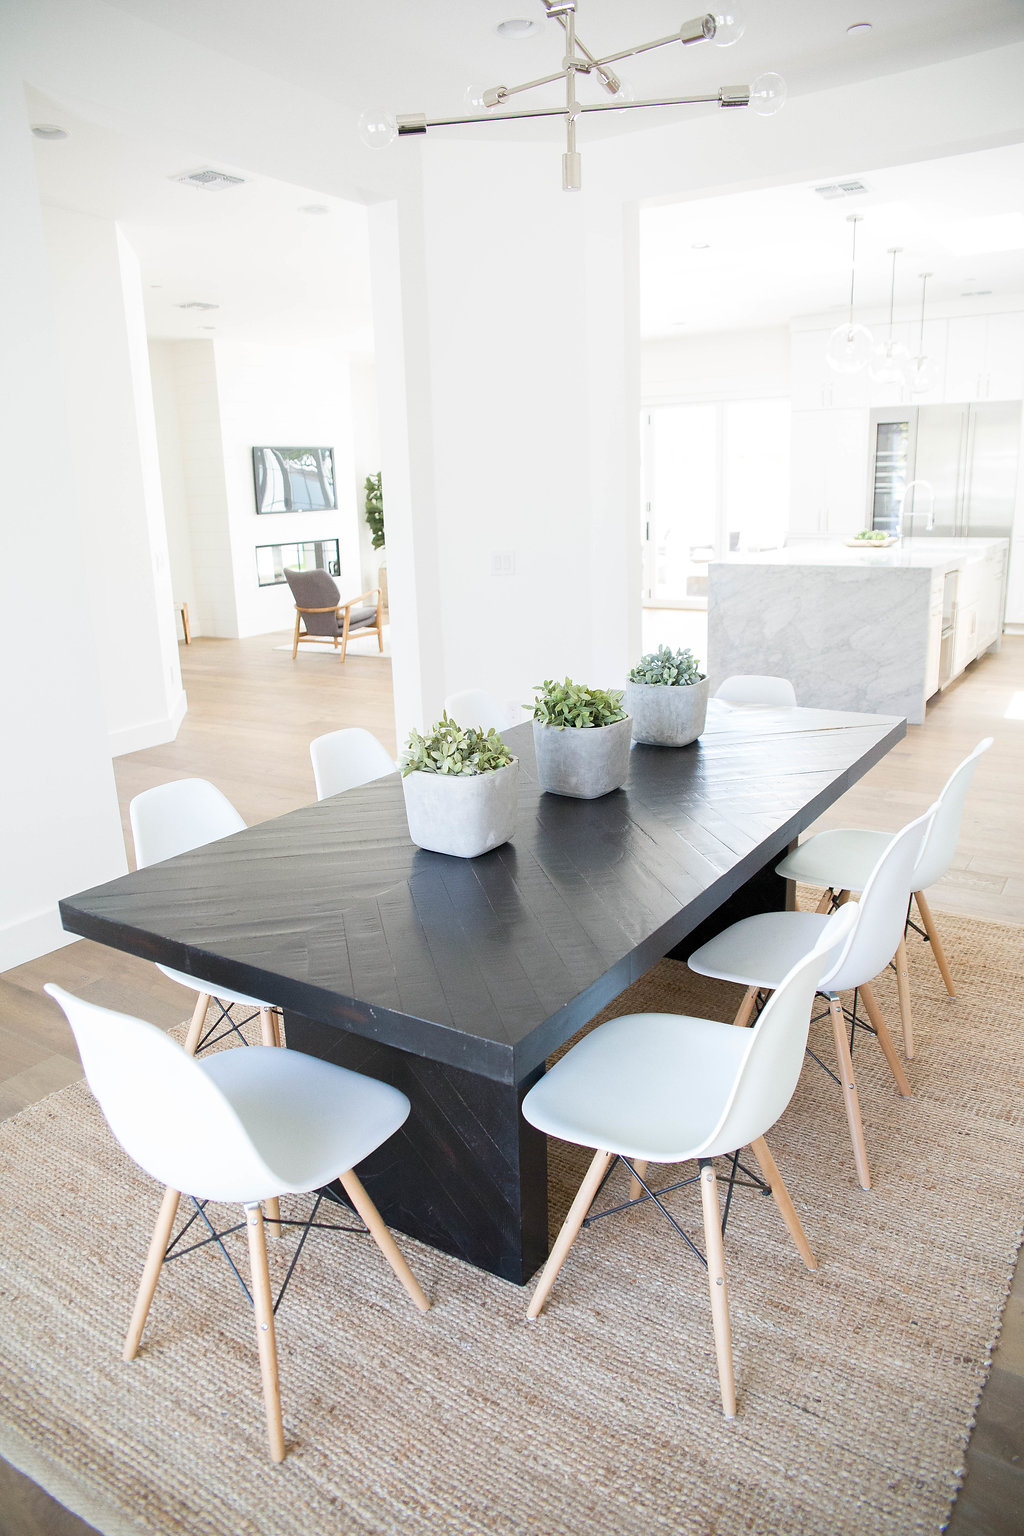 THE LifeStyled COMPANY - Lafayette Blvd Project